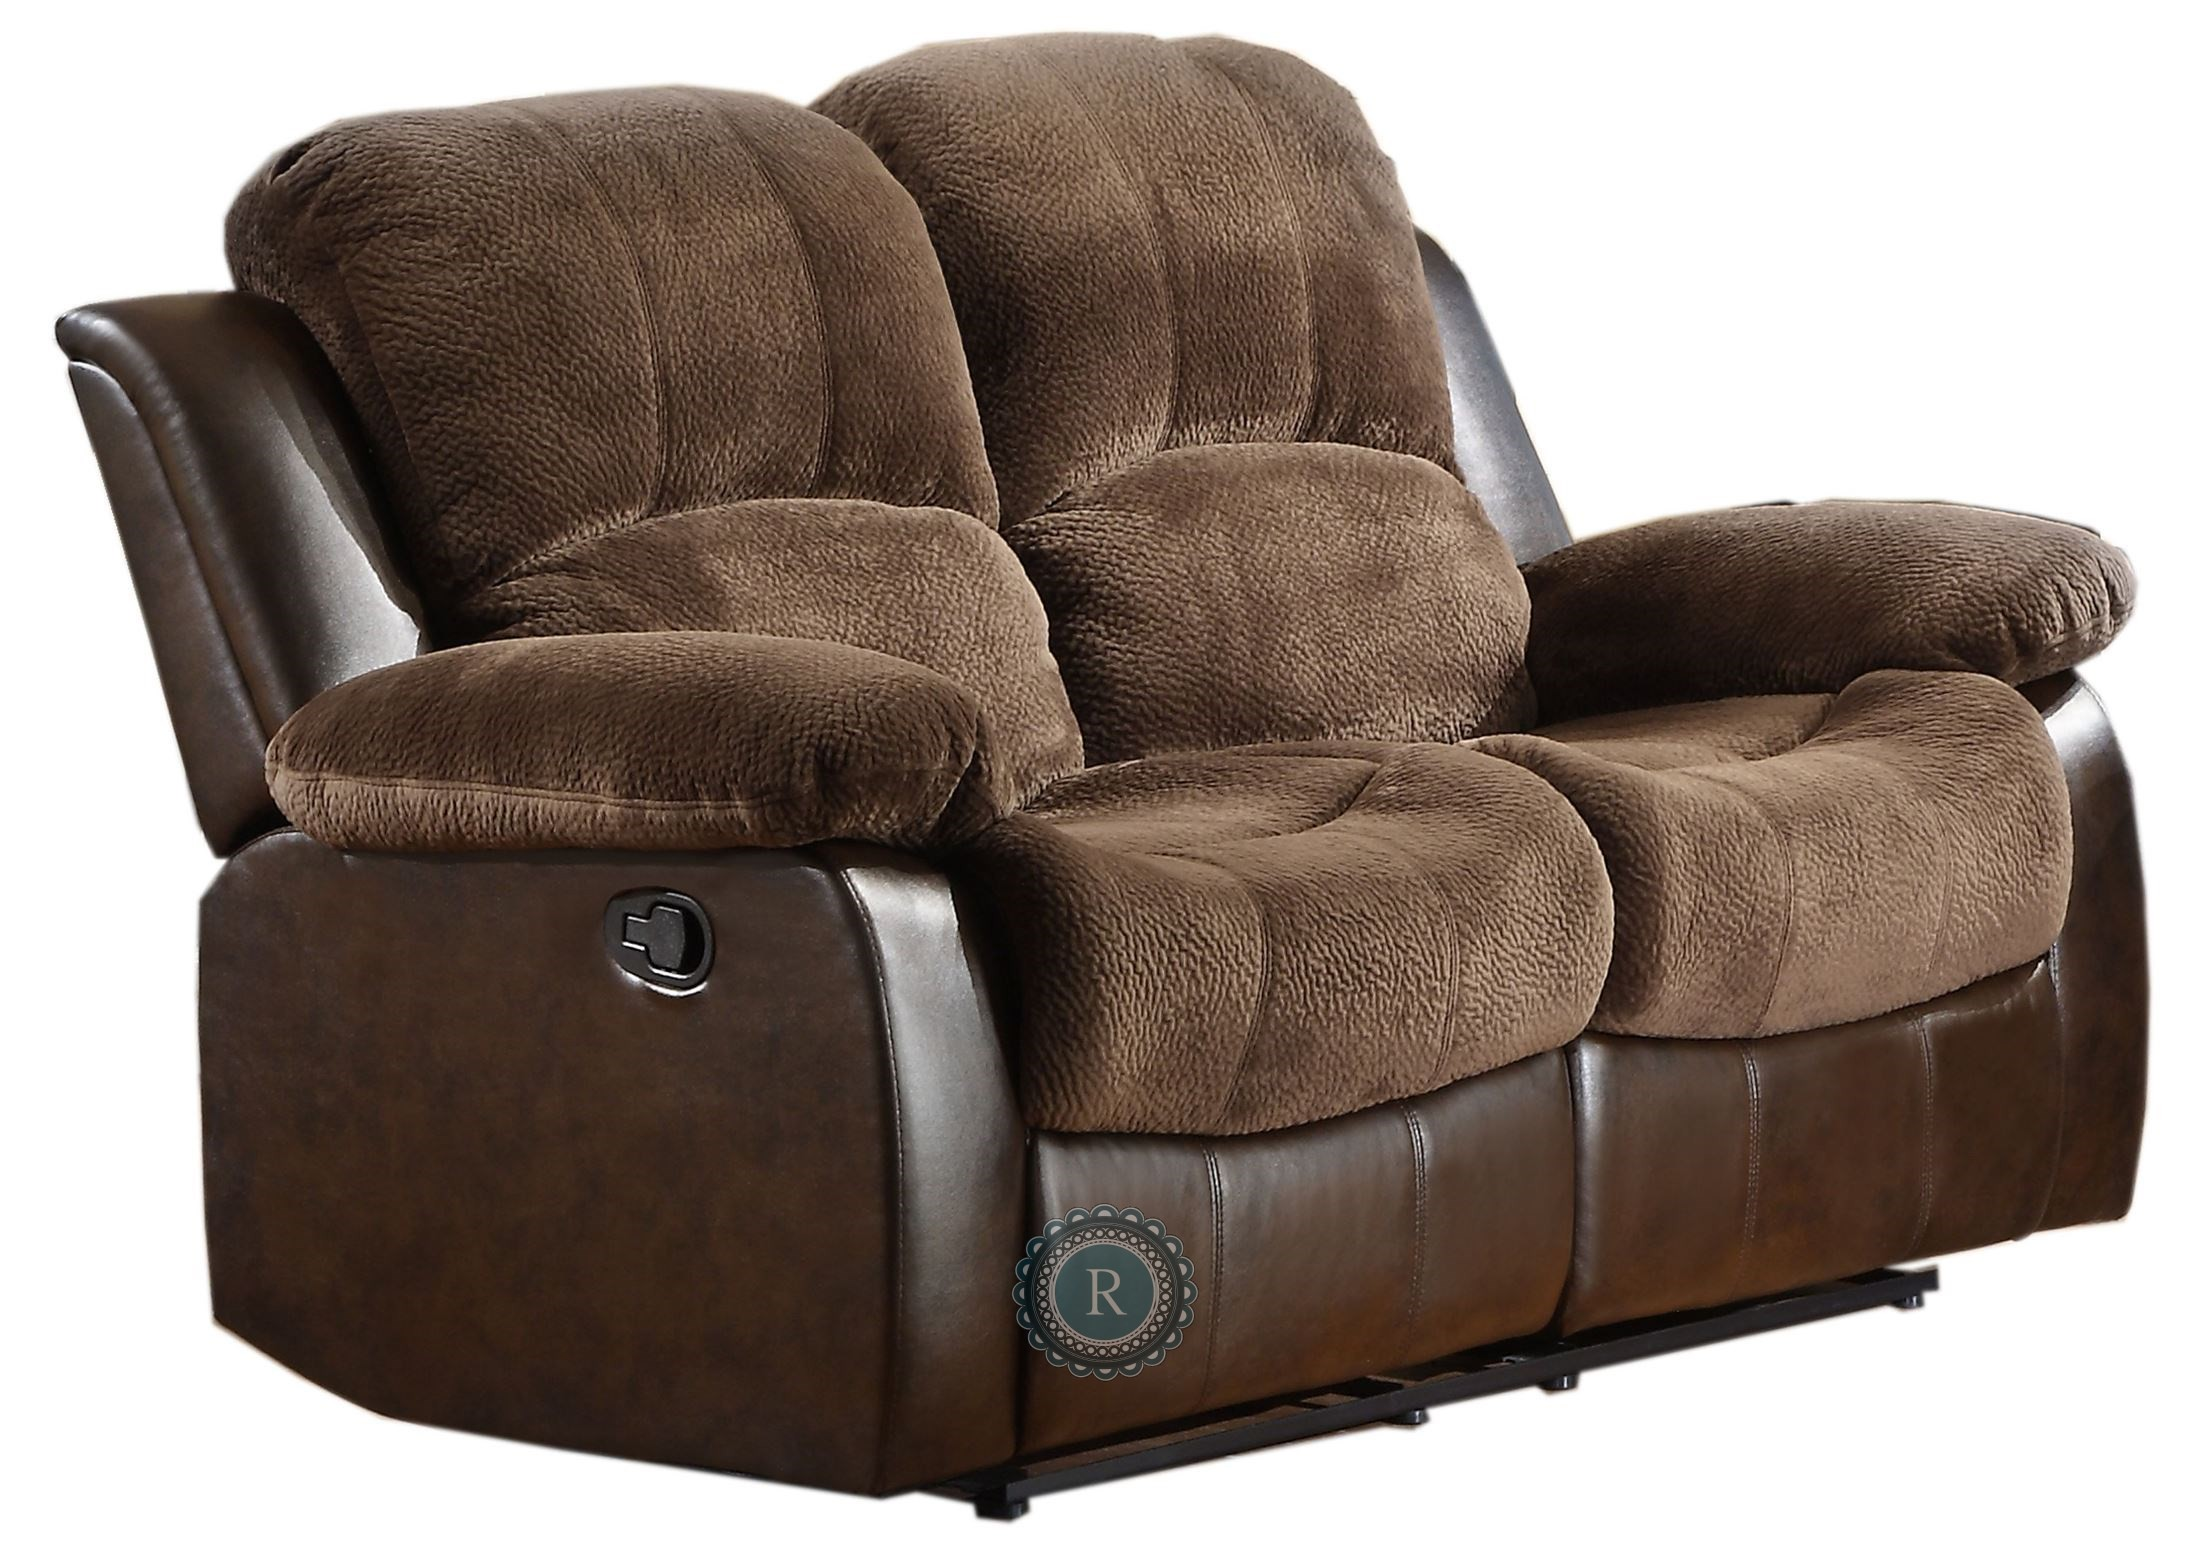 Cranley Dark Brown Double Reclining Loveseat From Homelegance 9700fcp 2 Coleman Furniture